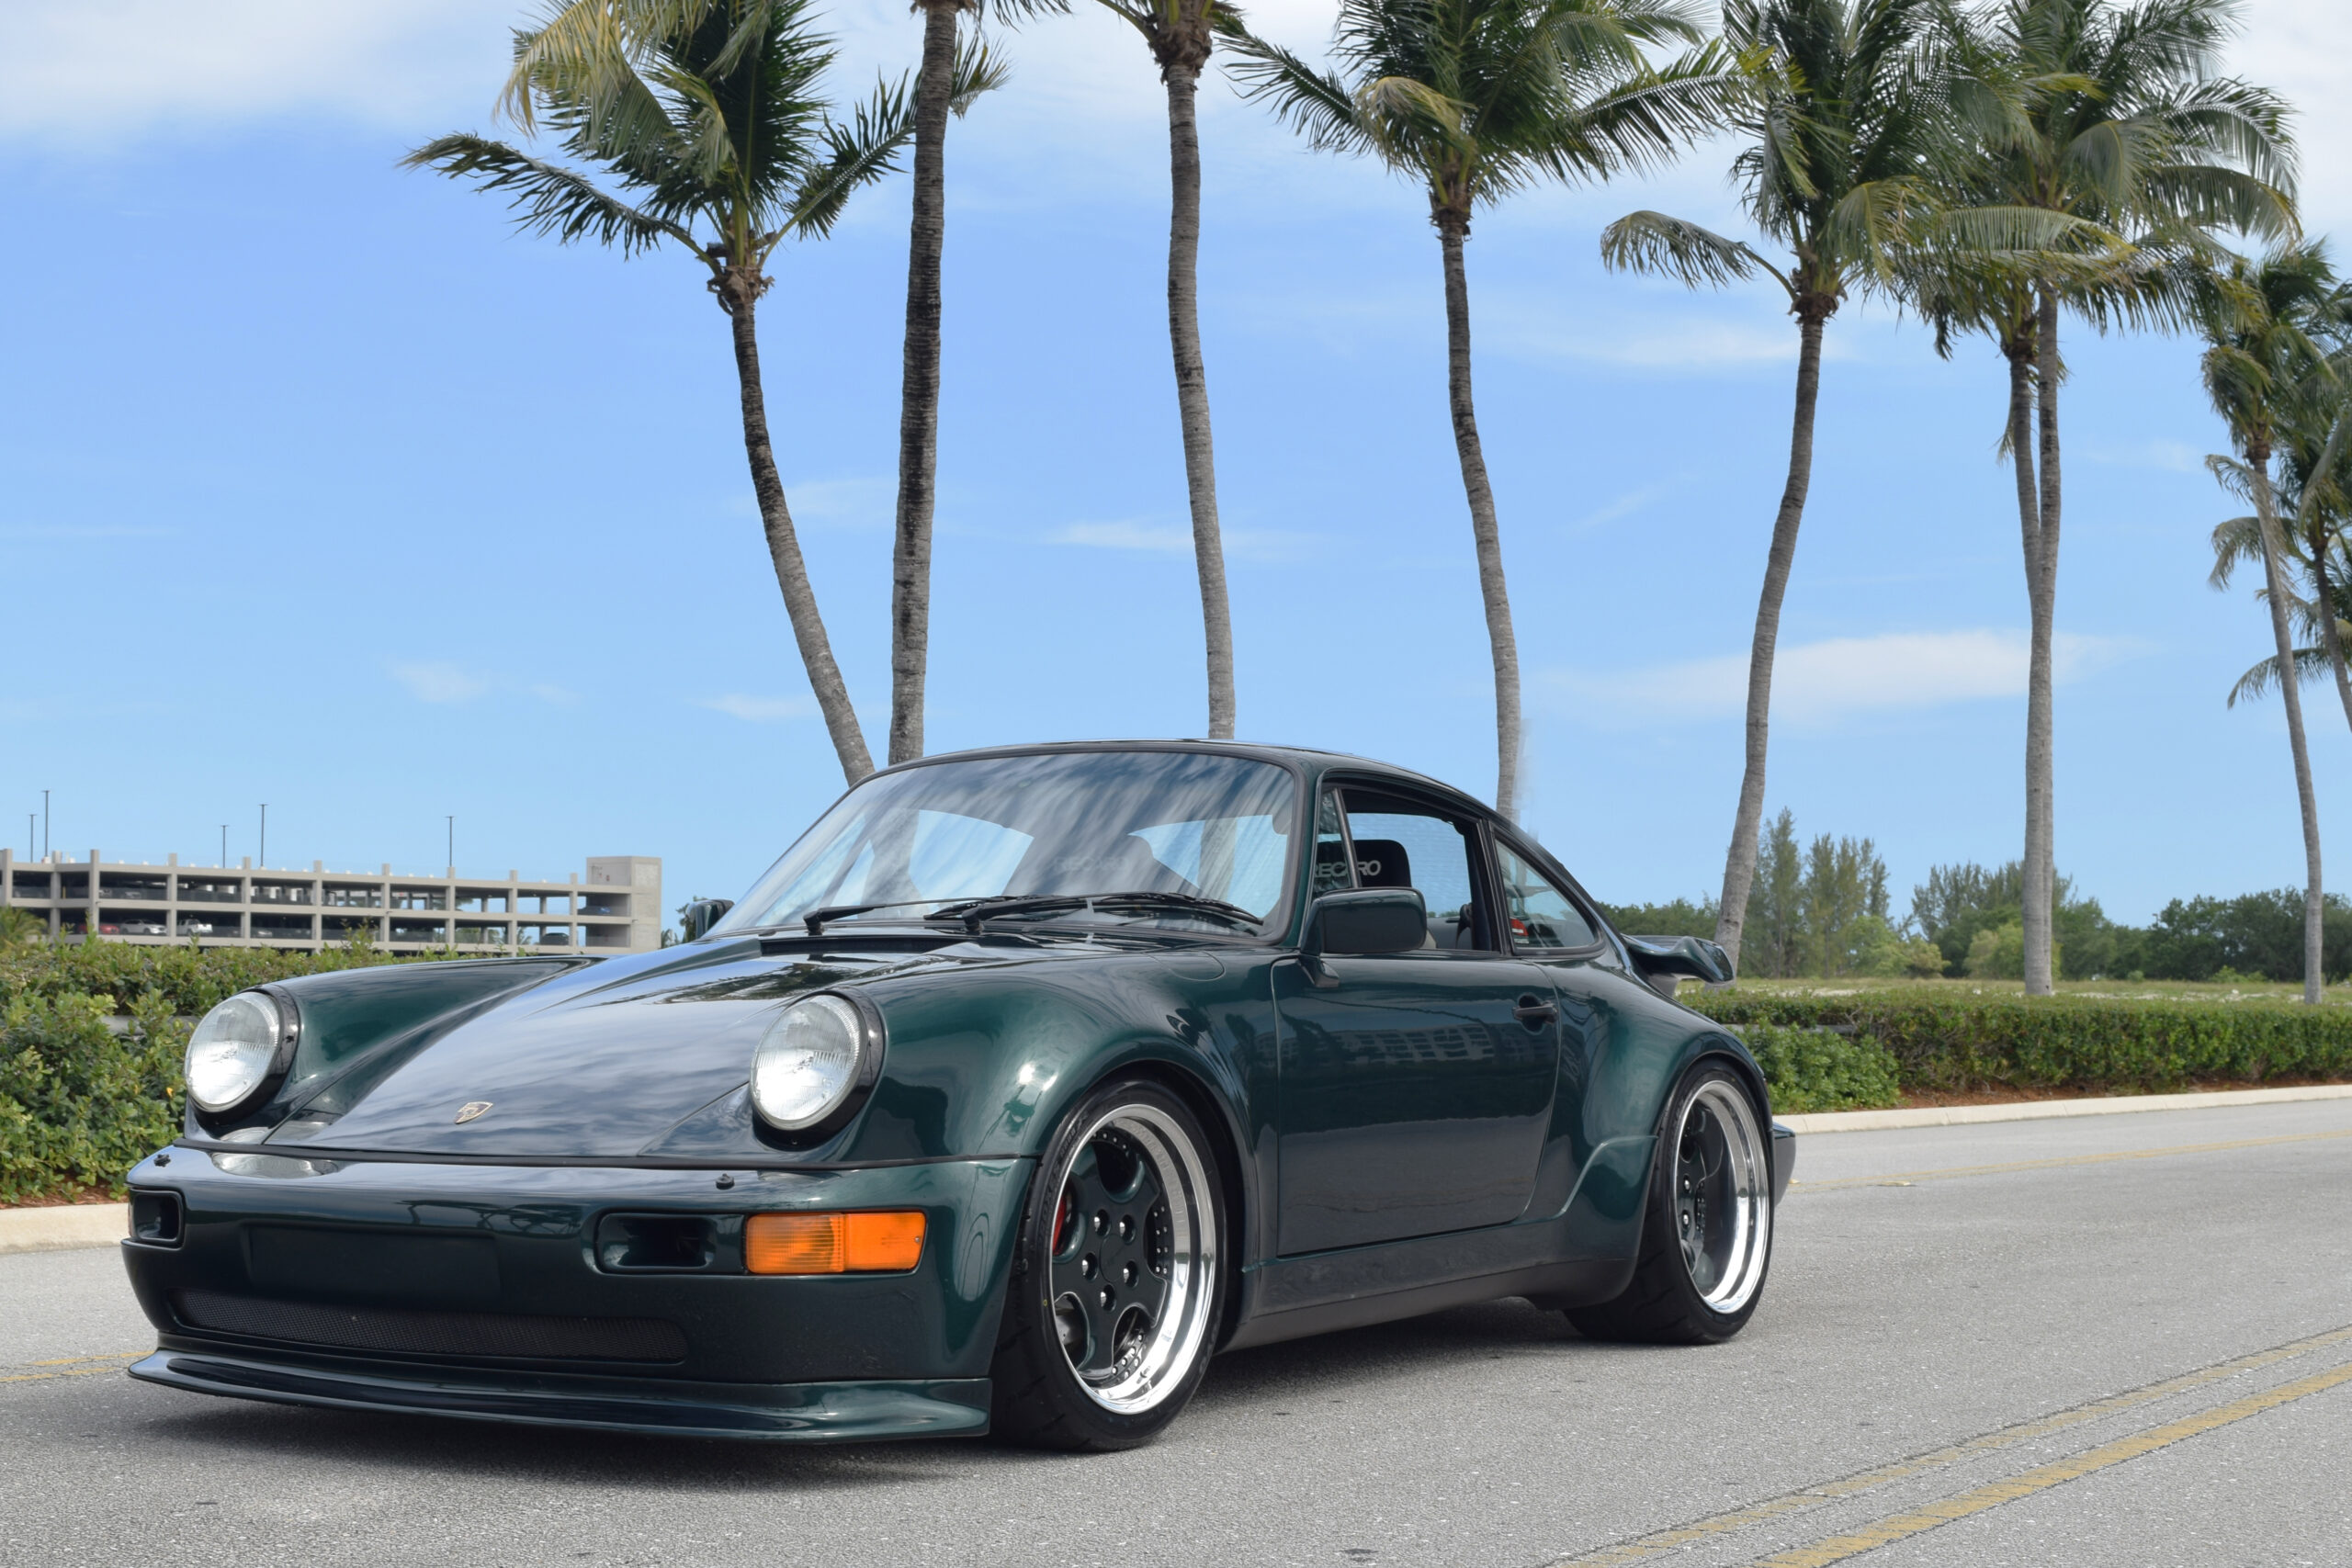 1990 Porsche 911 964 Carrera 4 Turbo $30k Split Case Rebuild – 3.3L Turbo – Widebody – OG Forest Green – Rotiforms